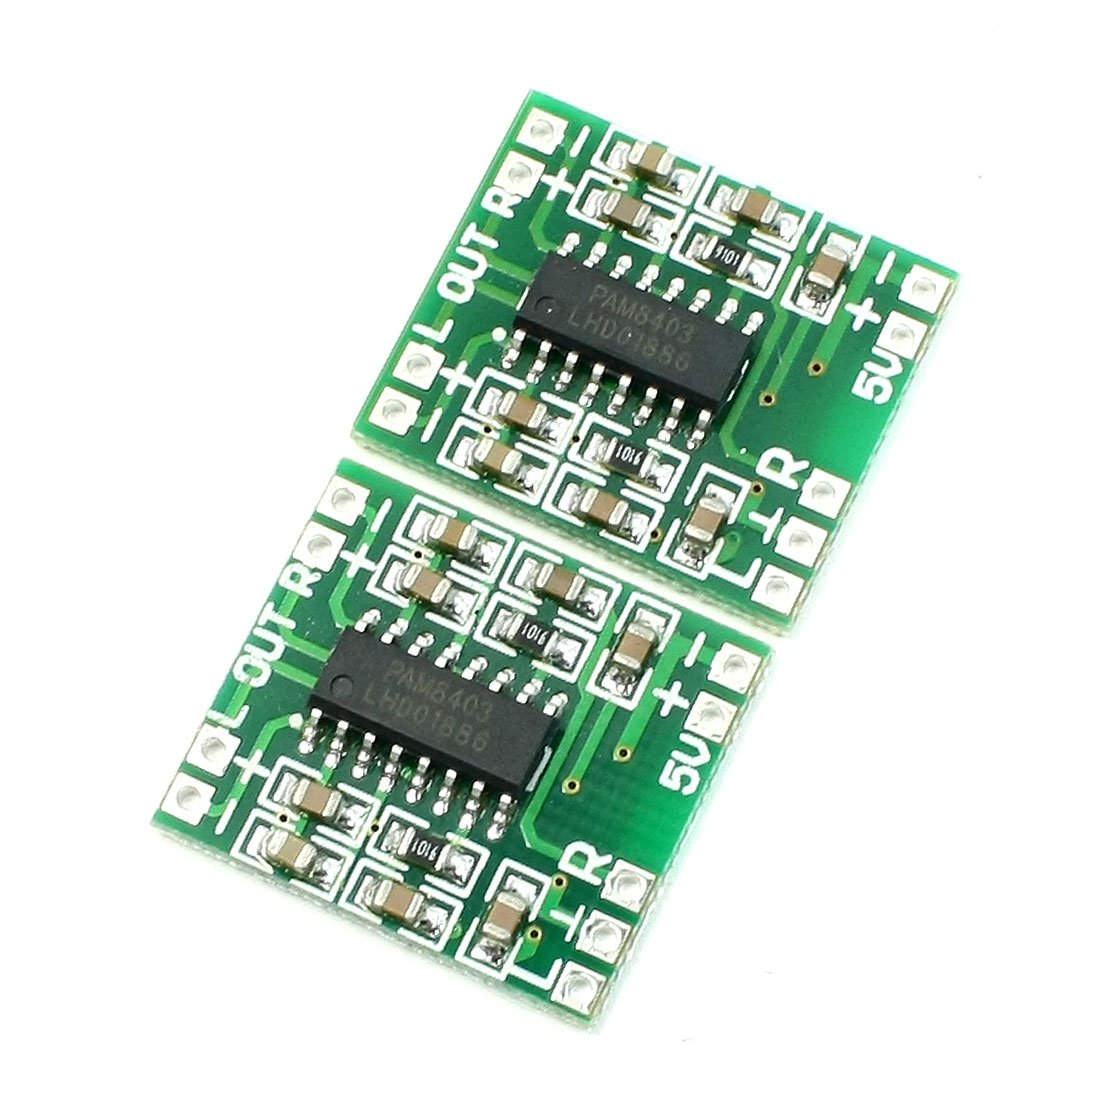 Tda2005 Circuit Power Amplifier 20w Bridge For Car Xtronic With Simple Electronic Diagram Pcb